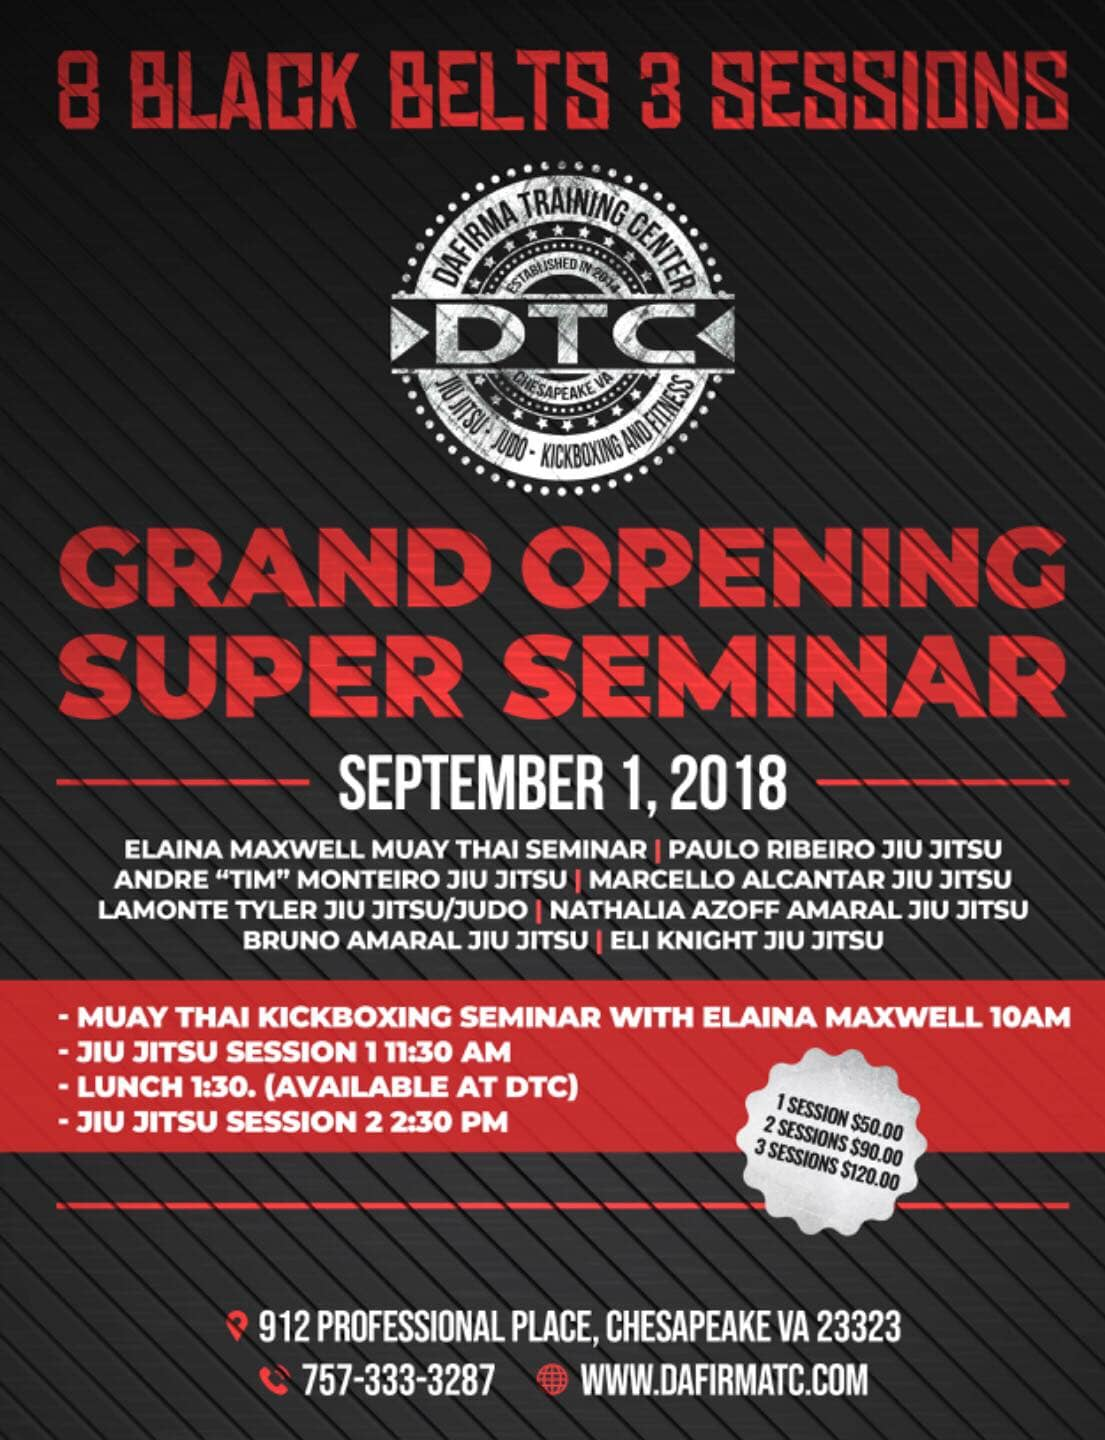 Grand Opening Super Seminar  in Chesapeake - Da Firma Training Center